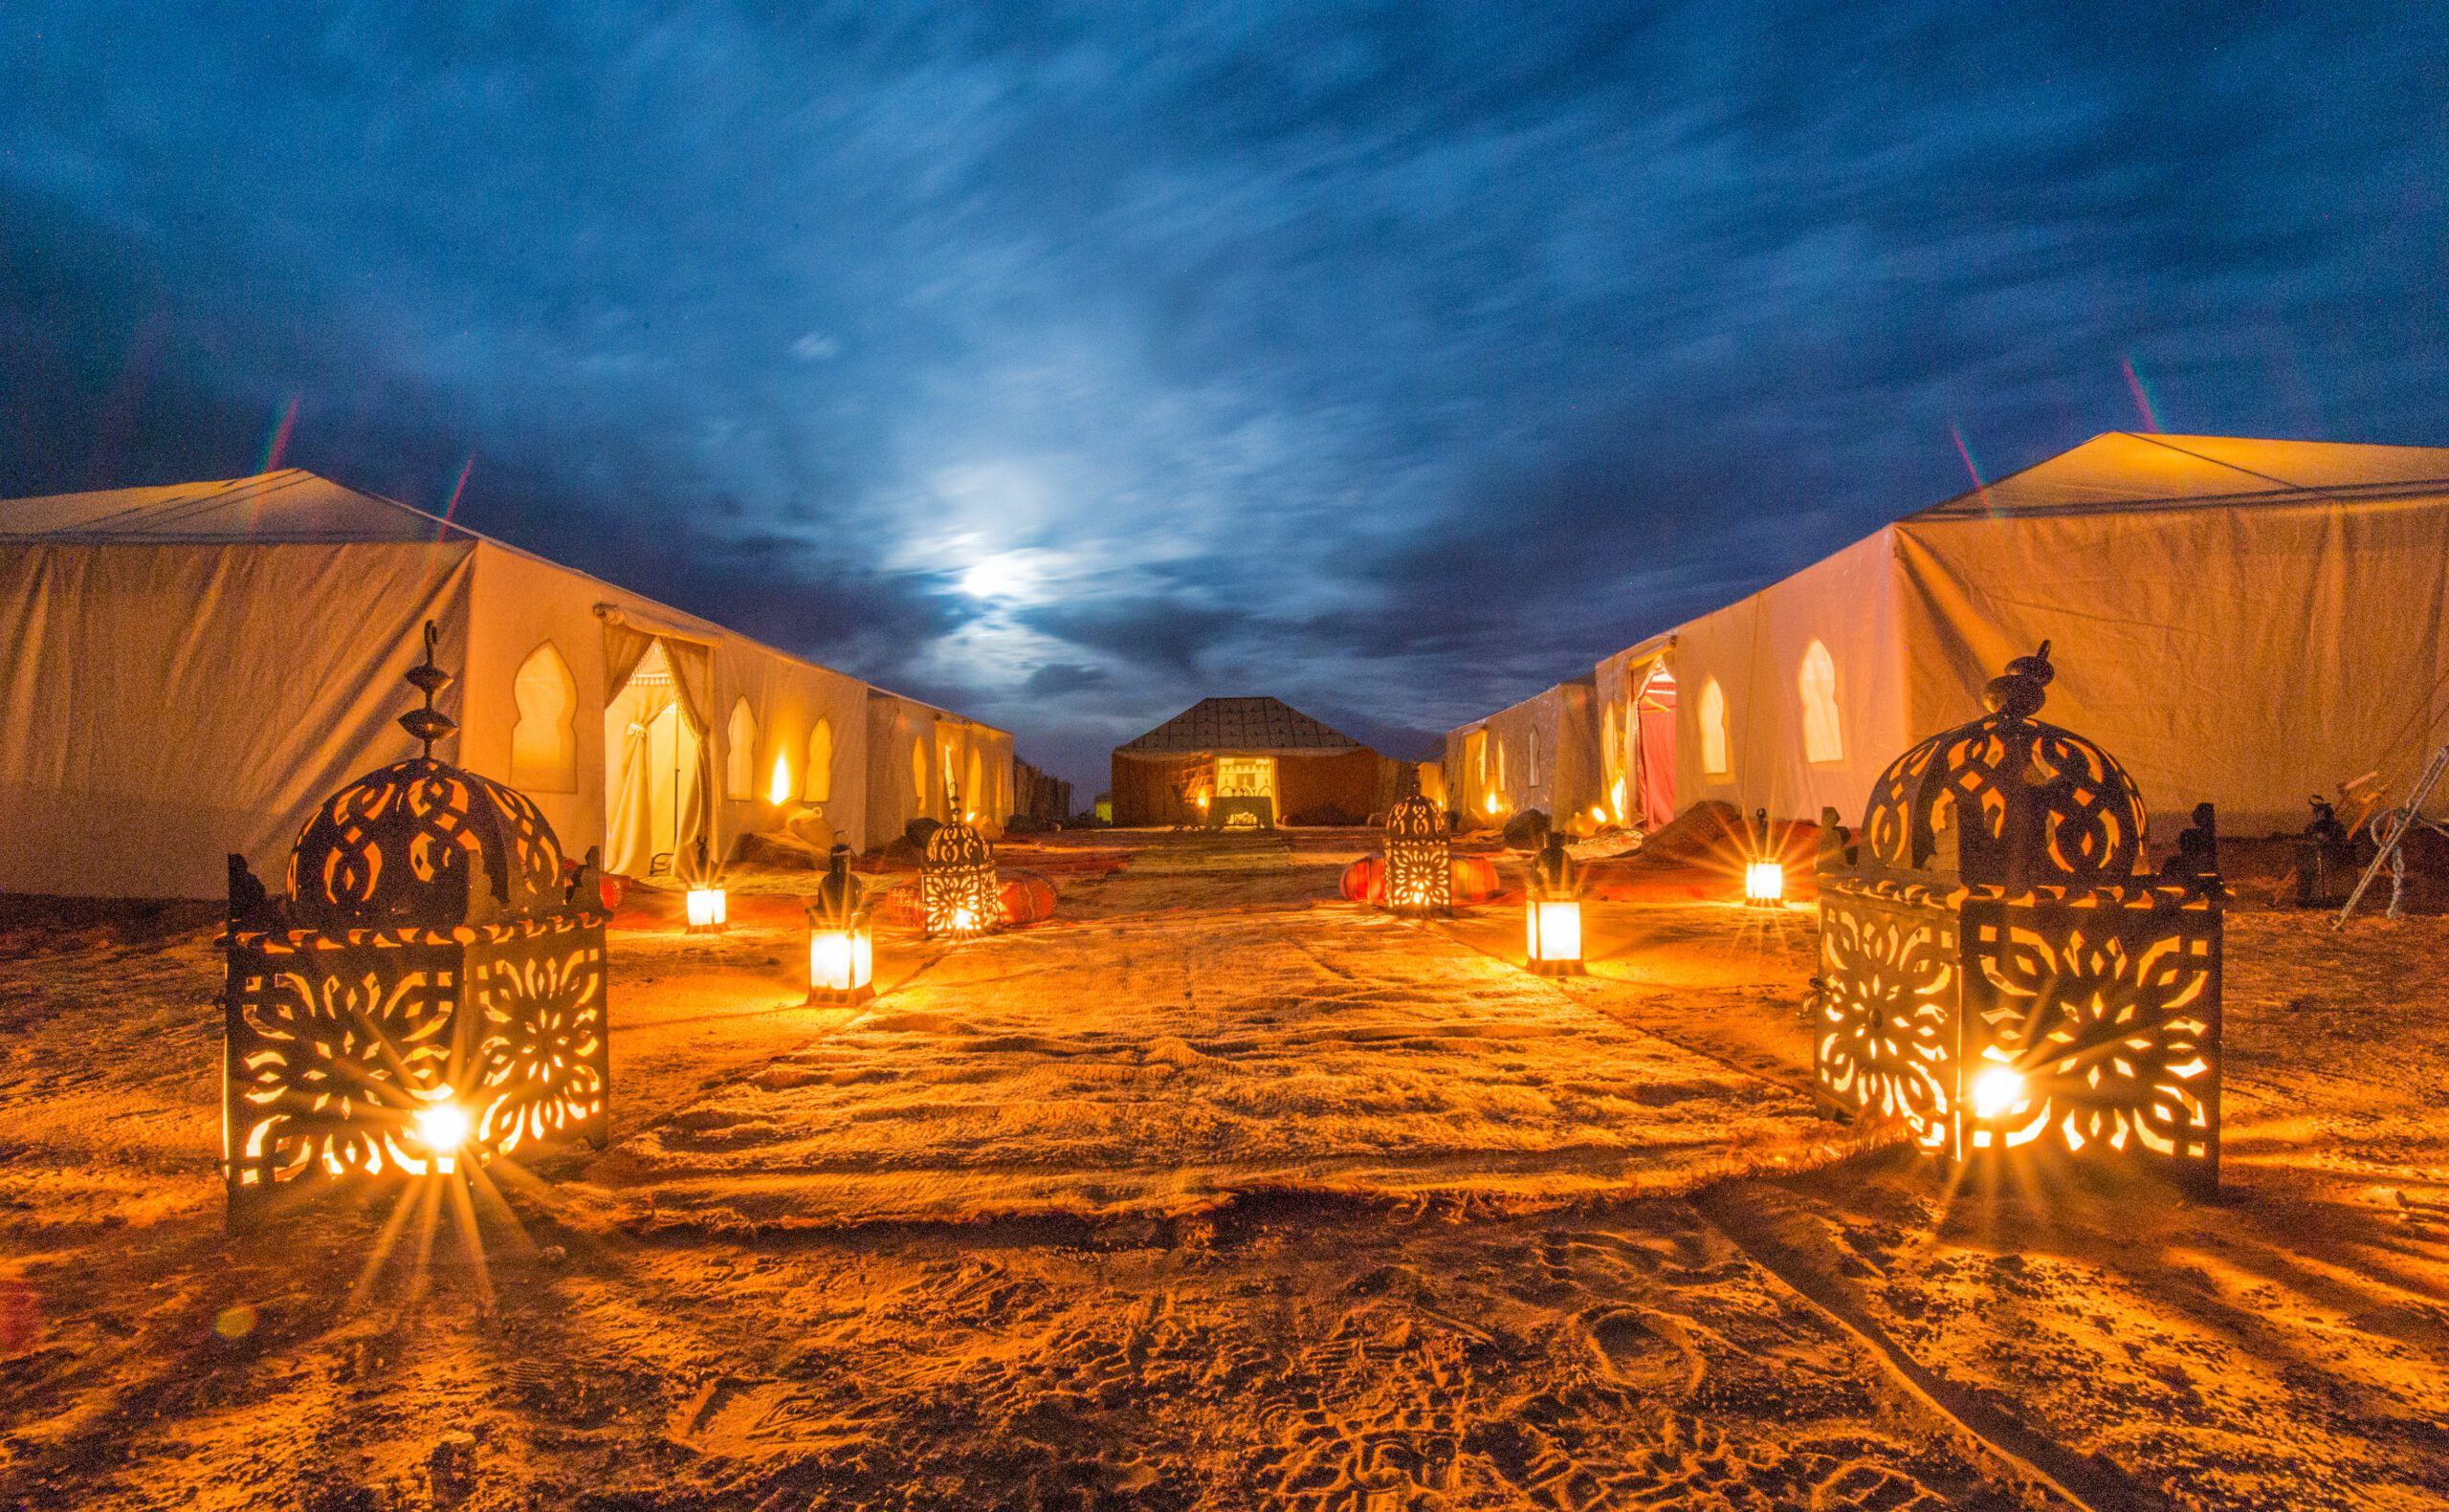 Gold Sand Camp alit at night